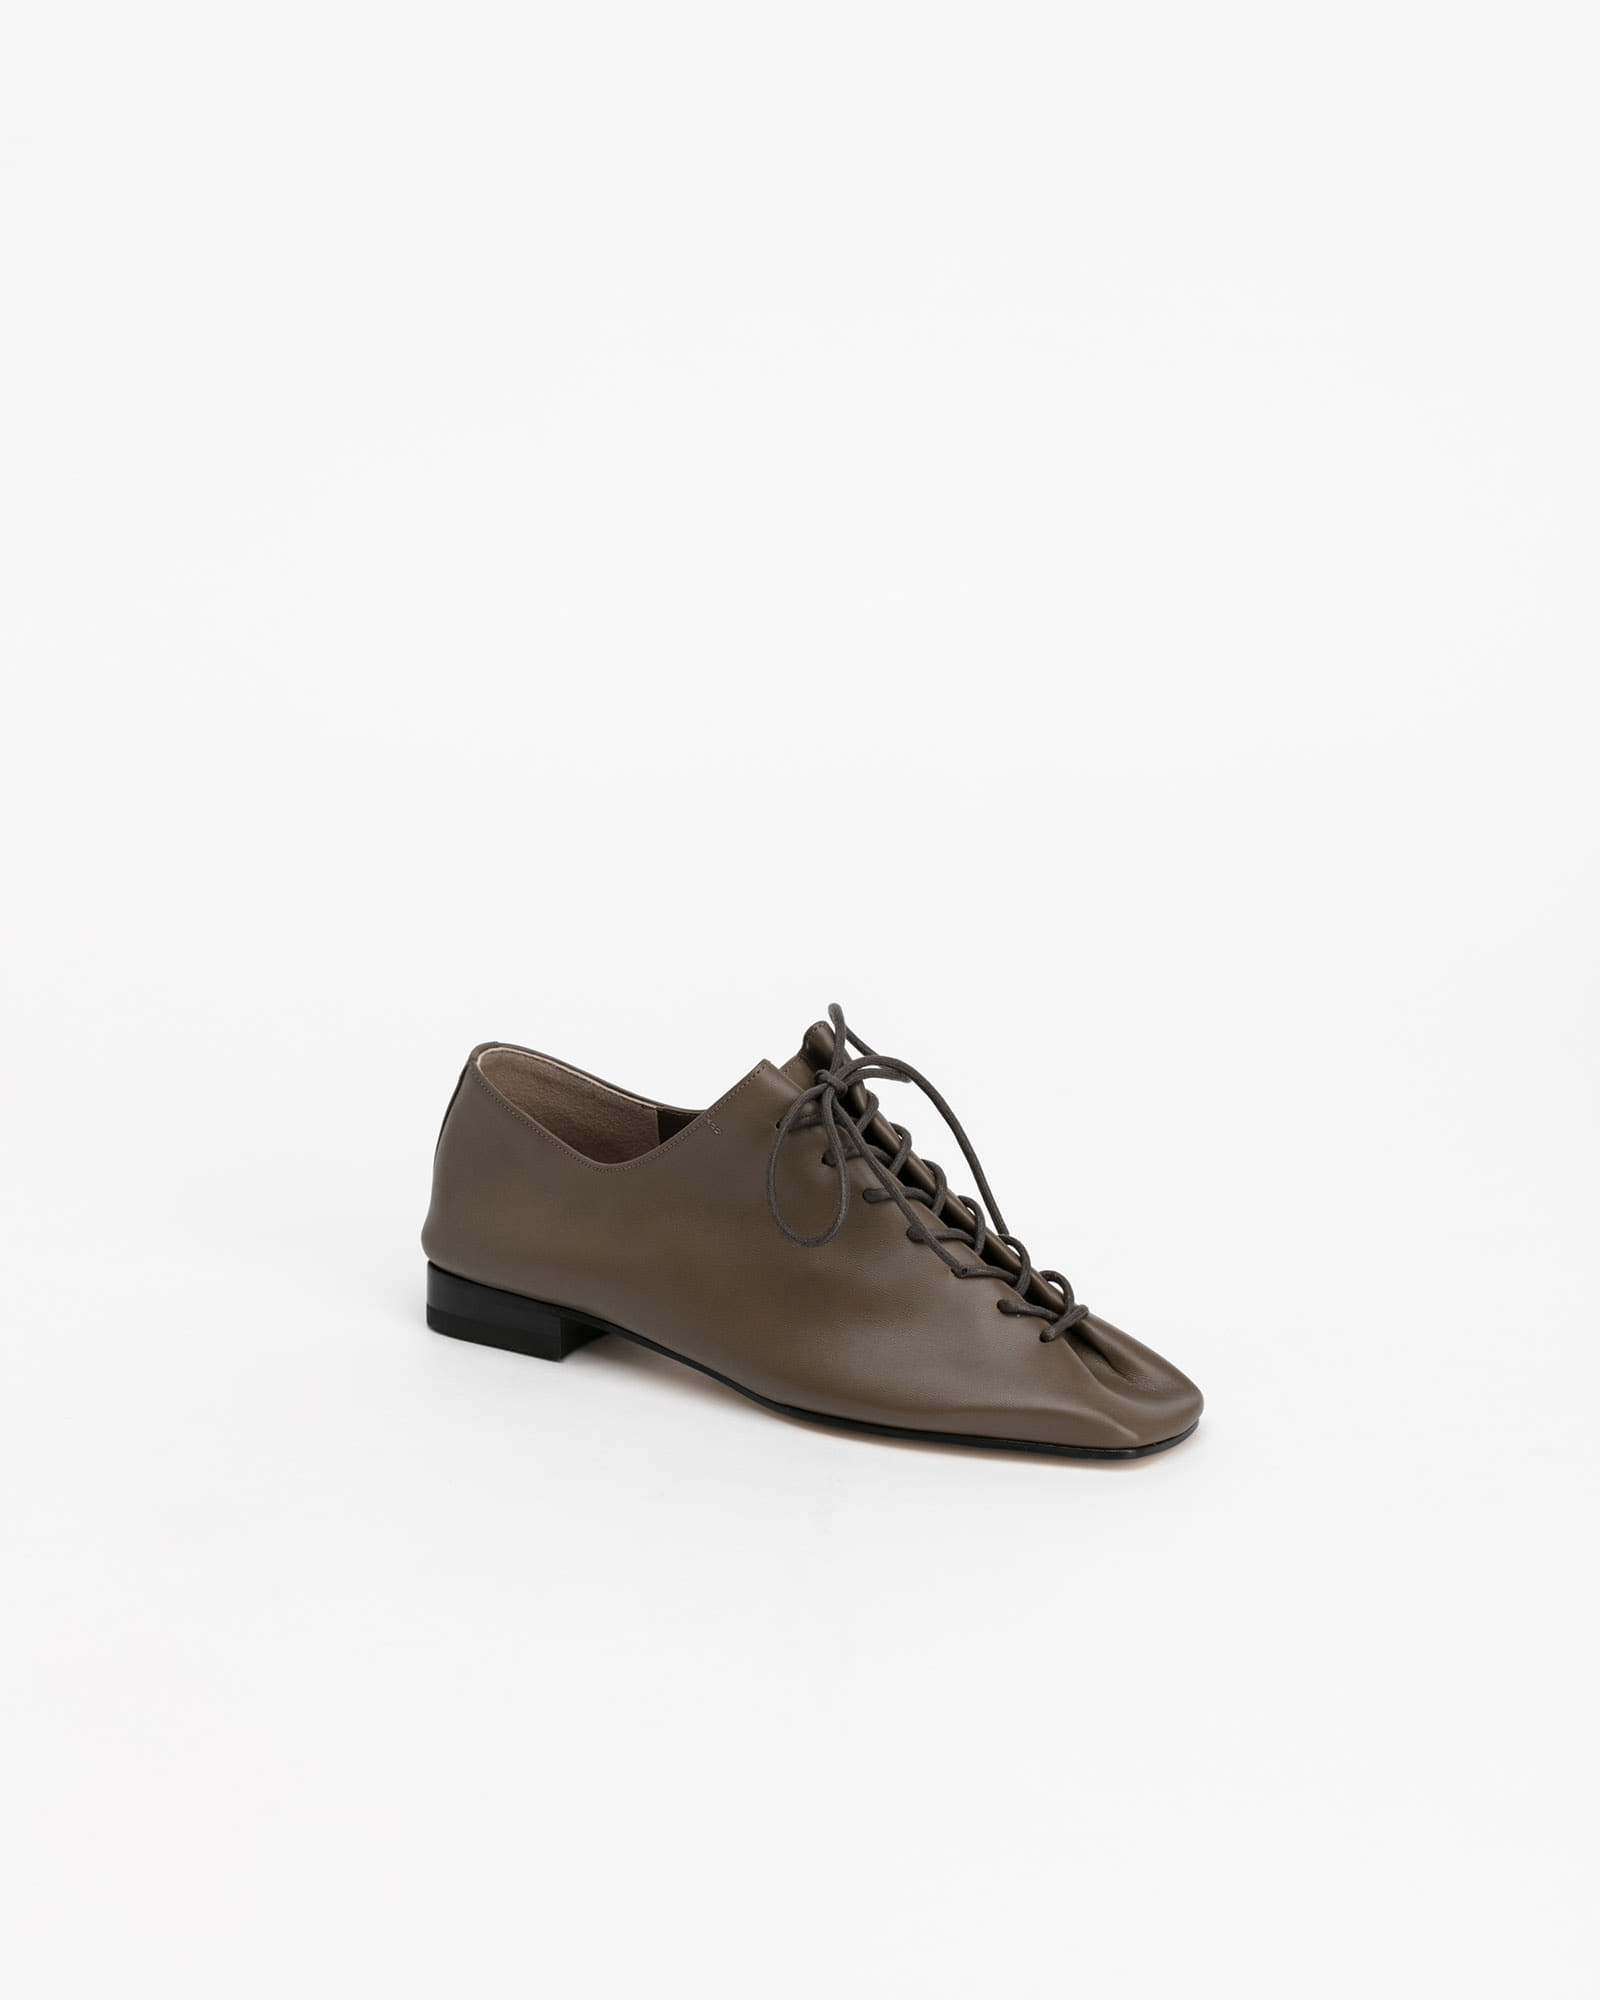 Banon Lace-up Flat Shoes in Khaki Brown